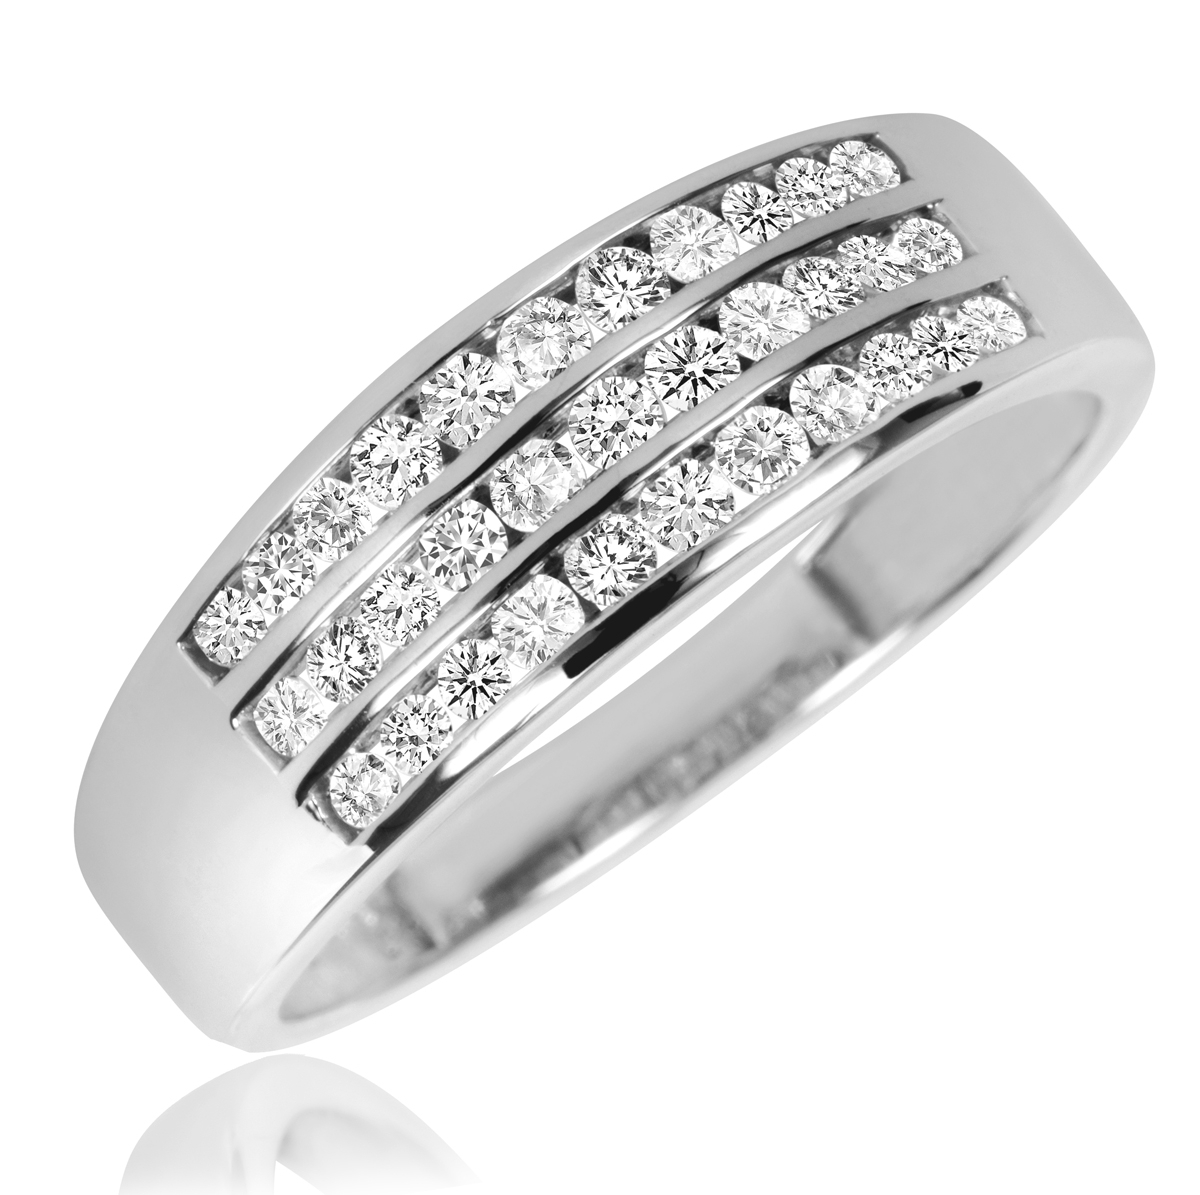 2/3 Carat T.w. Diamond Men's Wedding Band 14K White Gold With Regard To Most Up To Date Diamond Four Row Anniversary Rings In White Gold (Gallery 11 of 25)